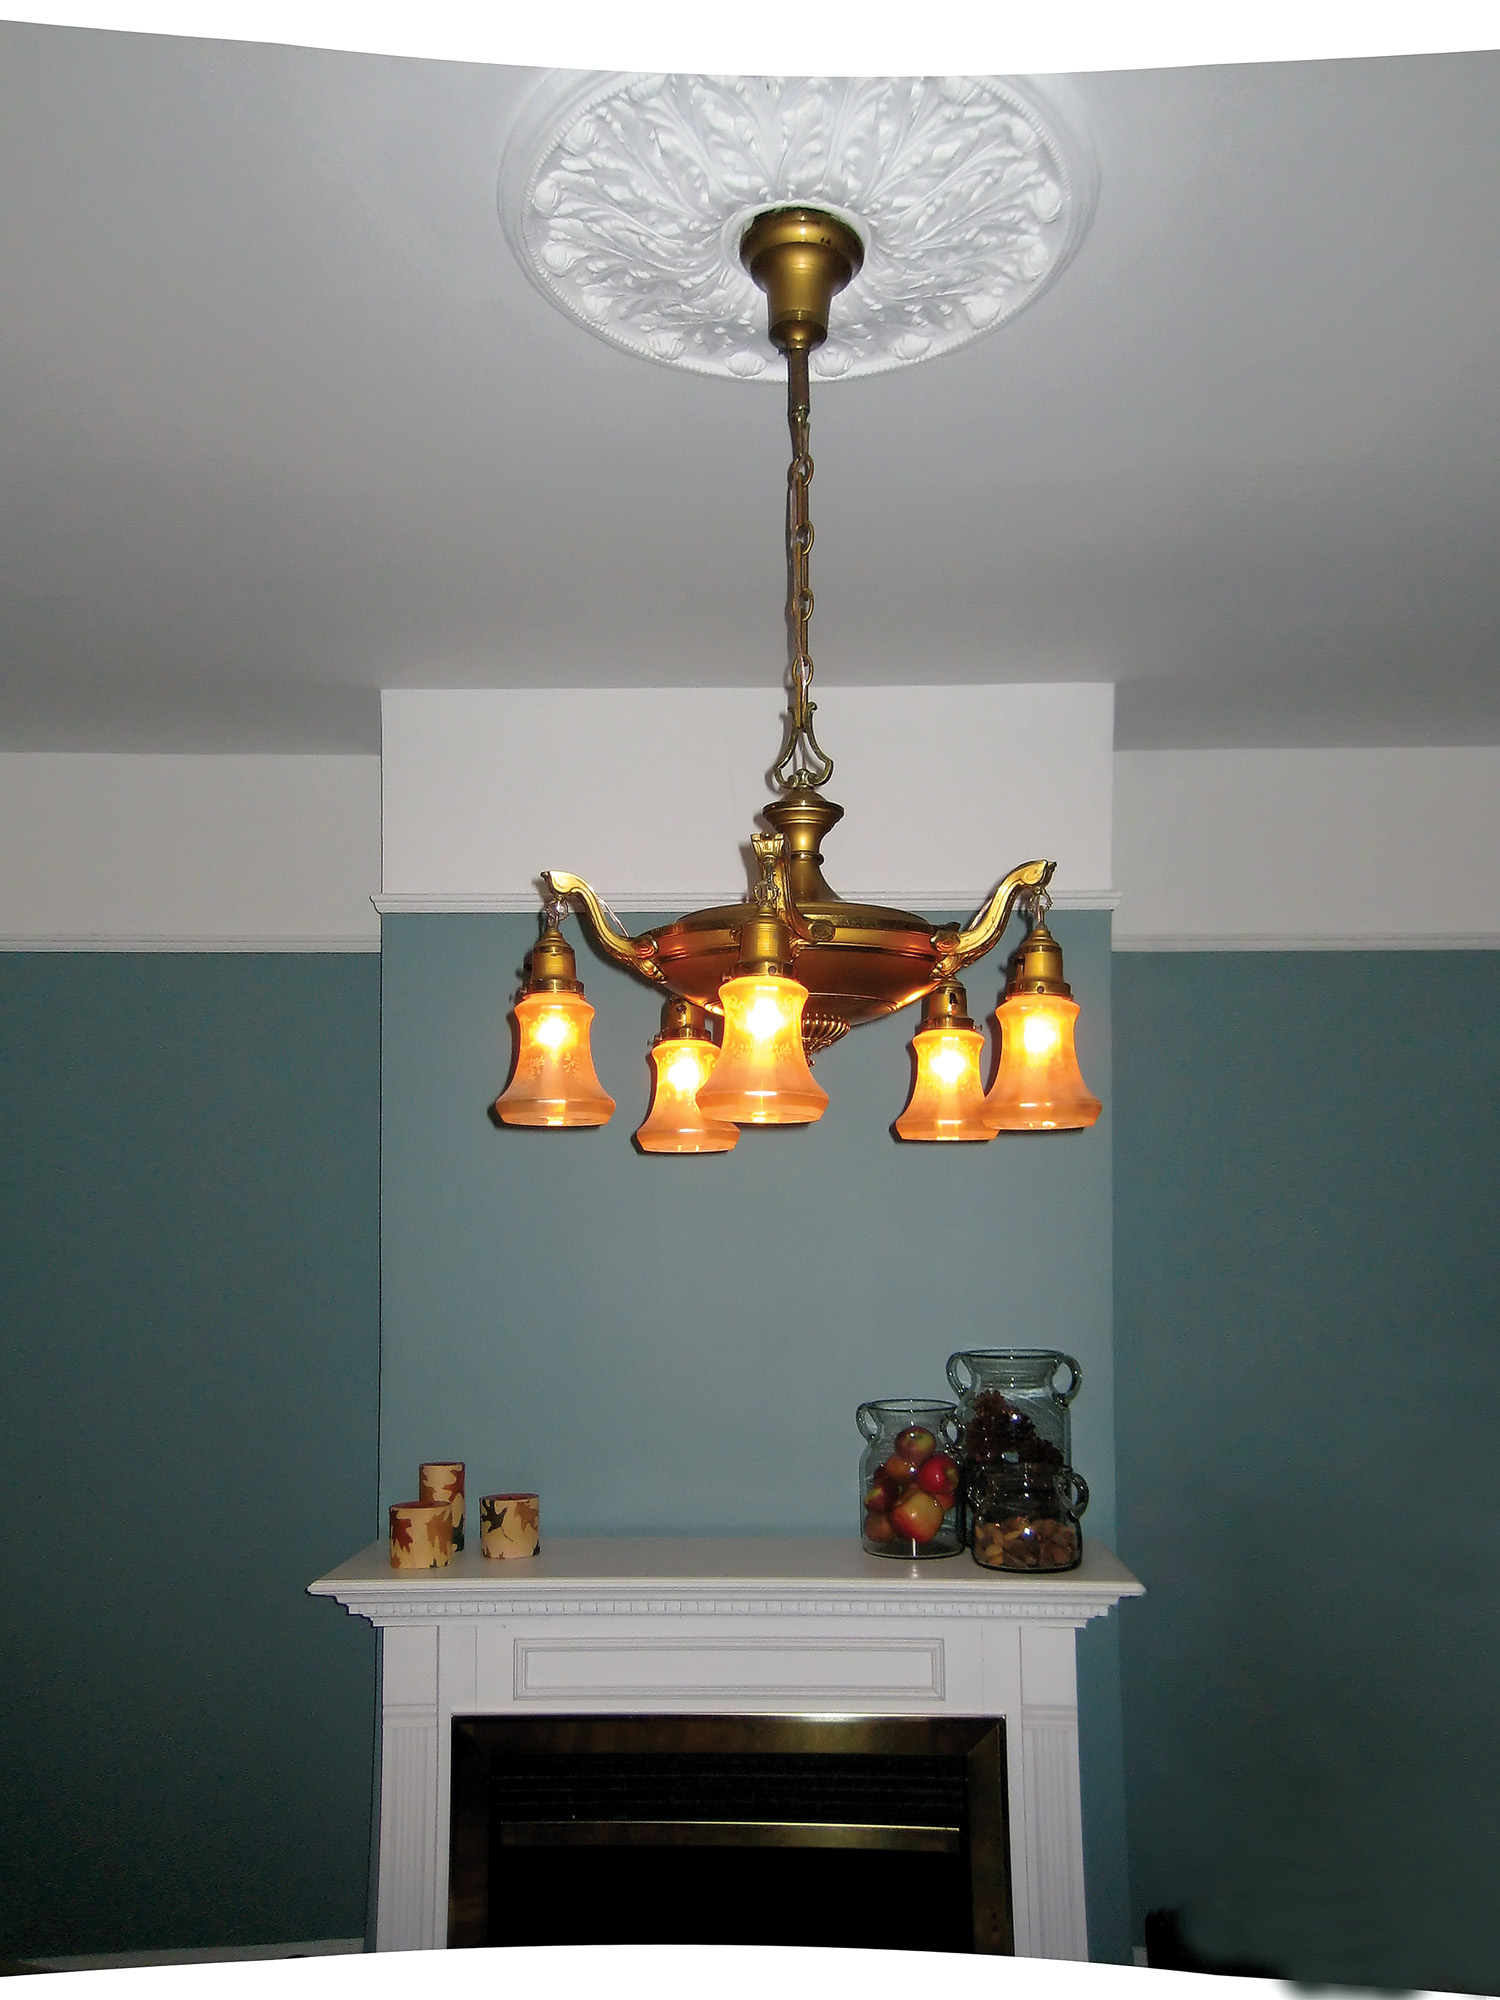 How To Rewire An Antique Light Fixture Old House